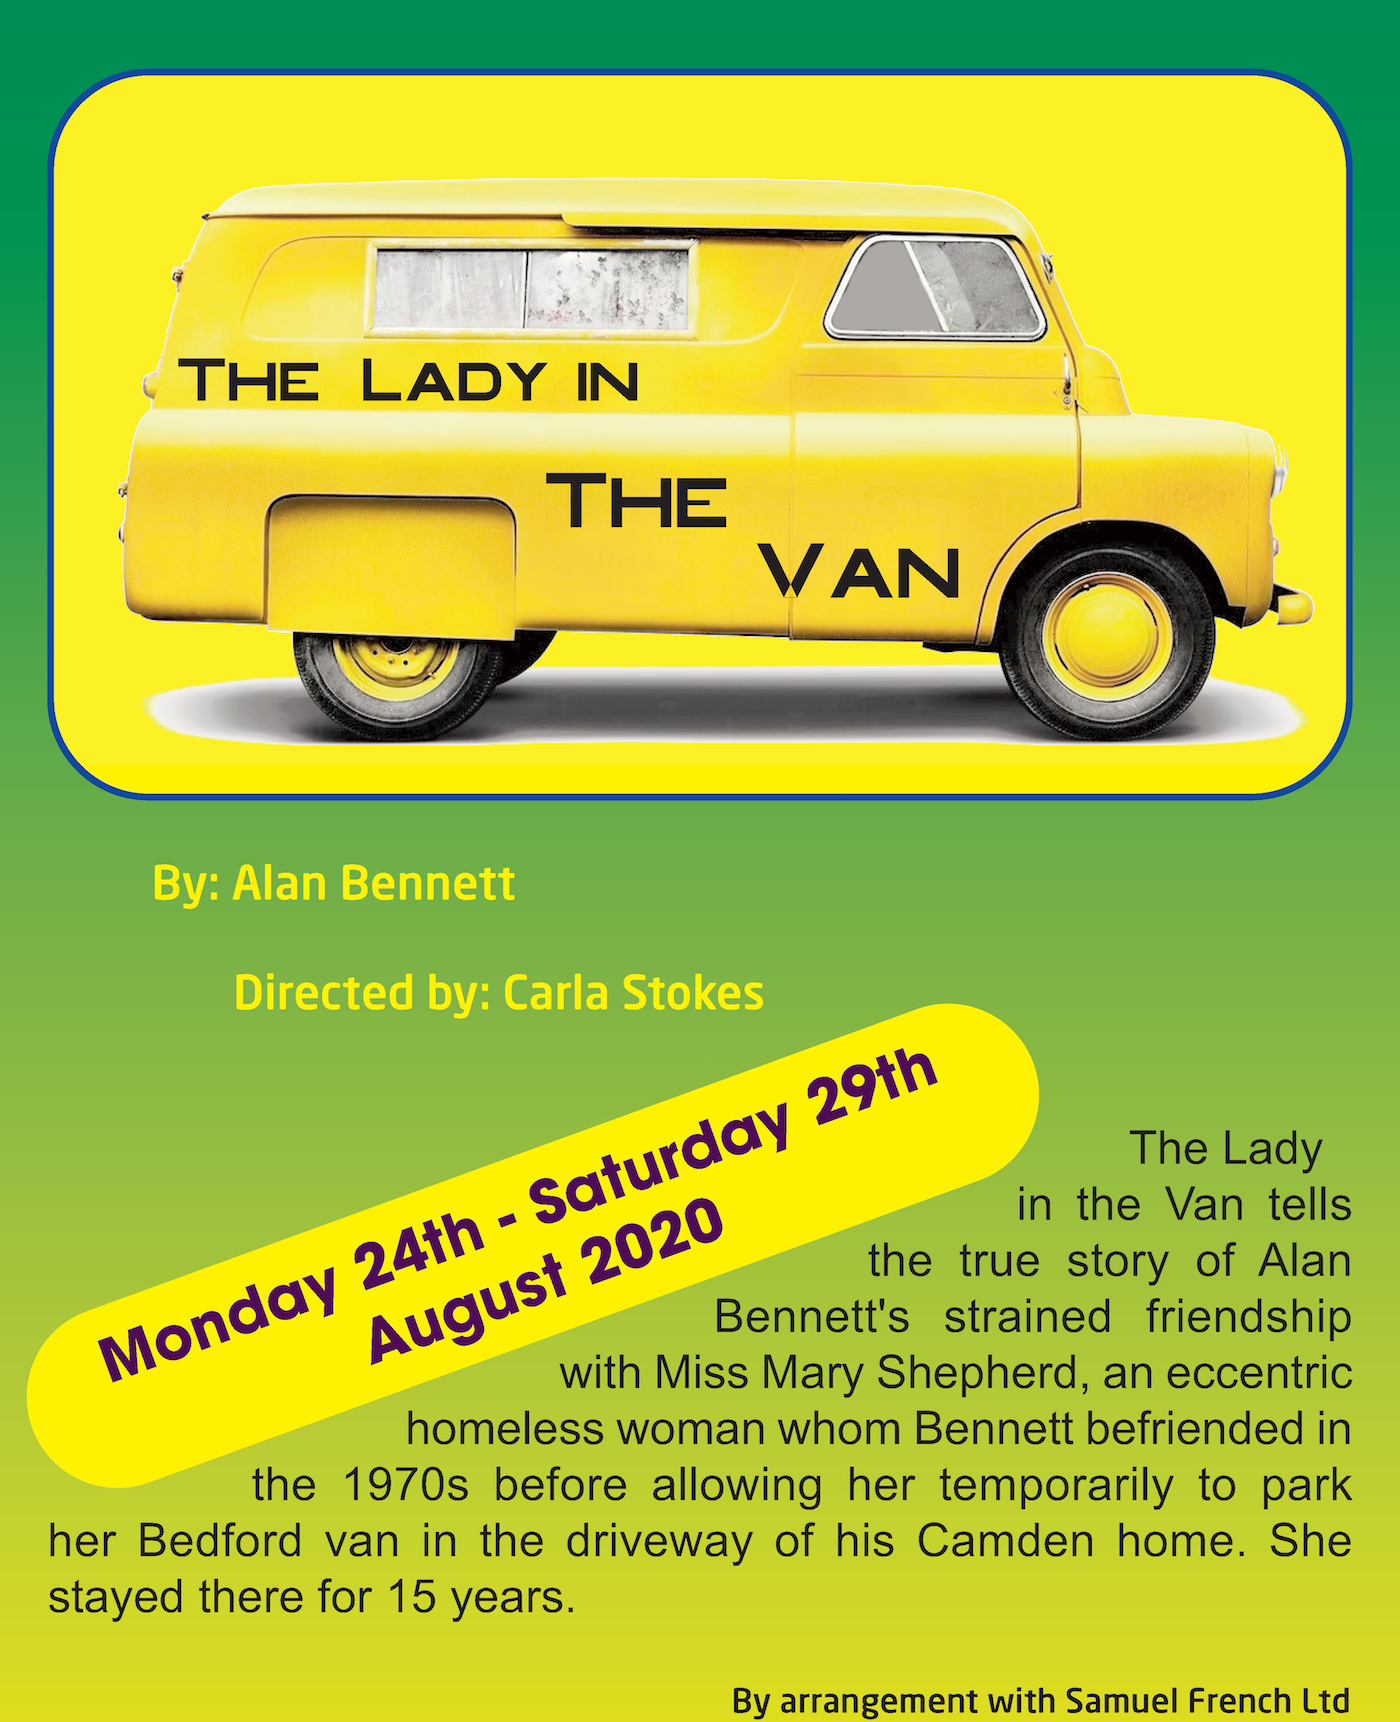 The Lady In The Van - Monday 23rd to Saturday 28th August 2020 at 7:30pm